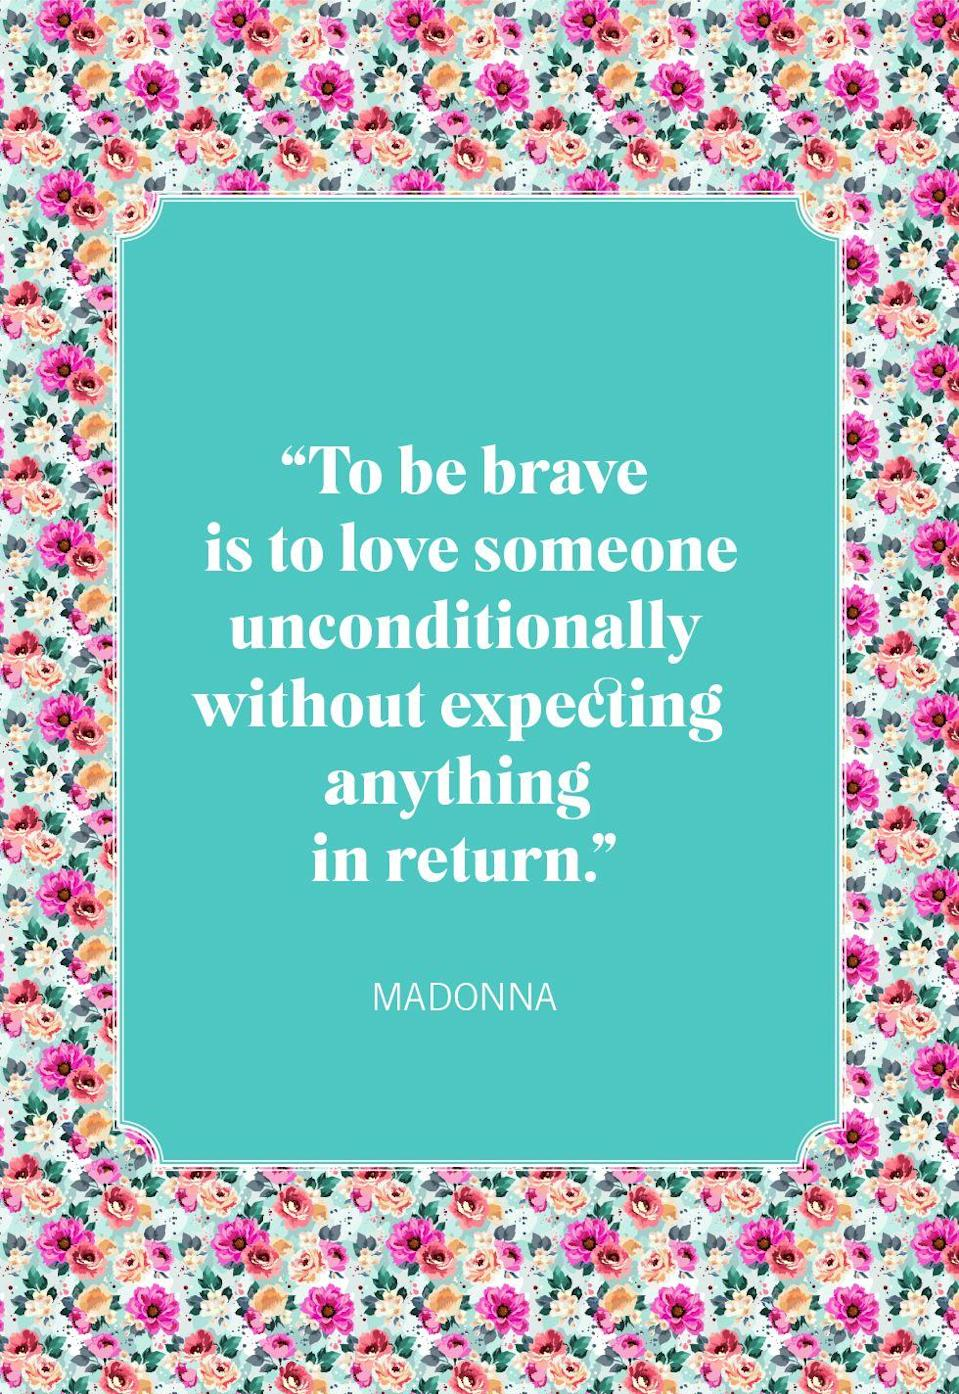 "<p>""To be brave is to love someone unconditionally without expecting anything in return.""</p>"